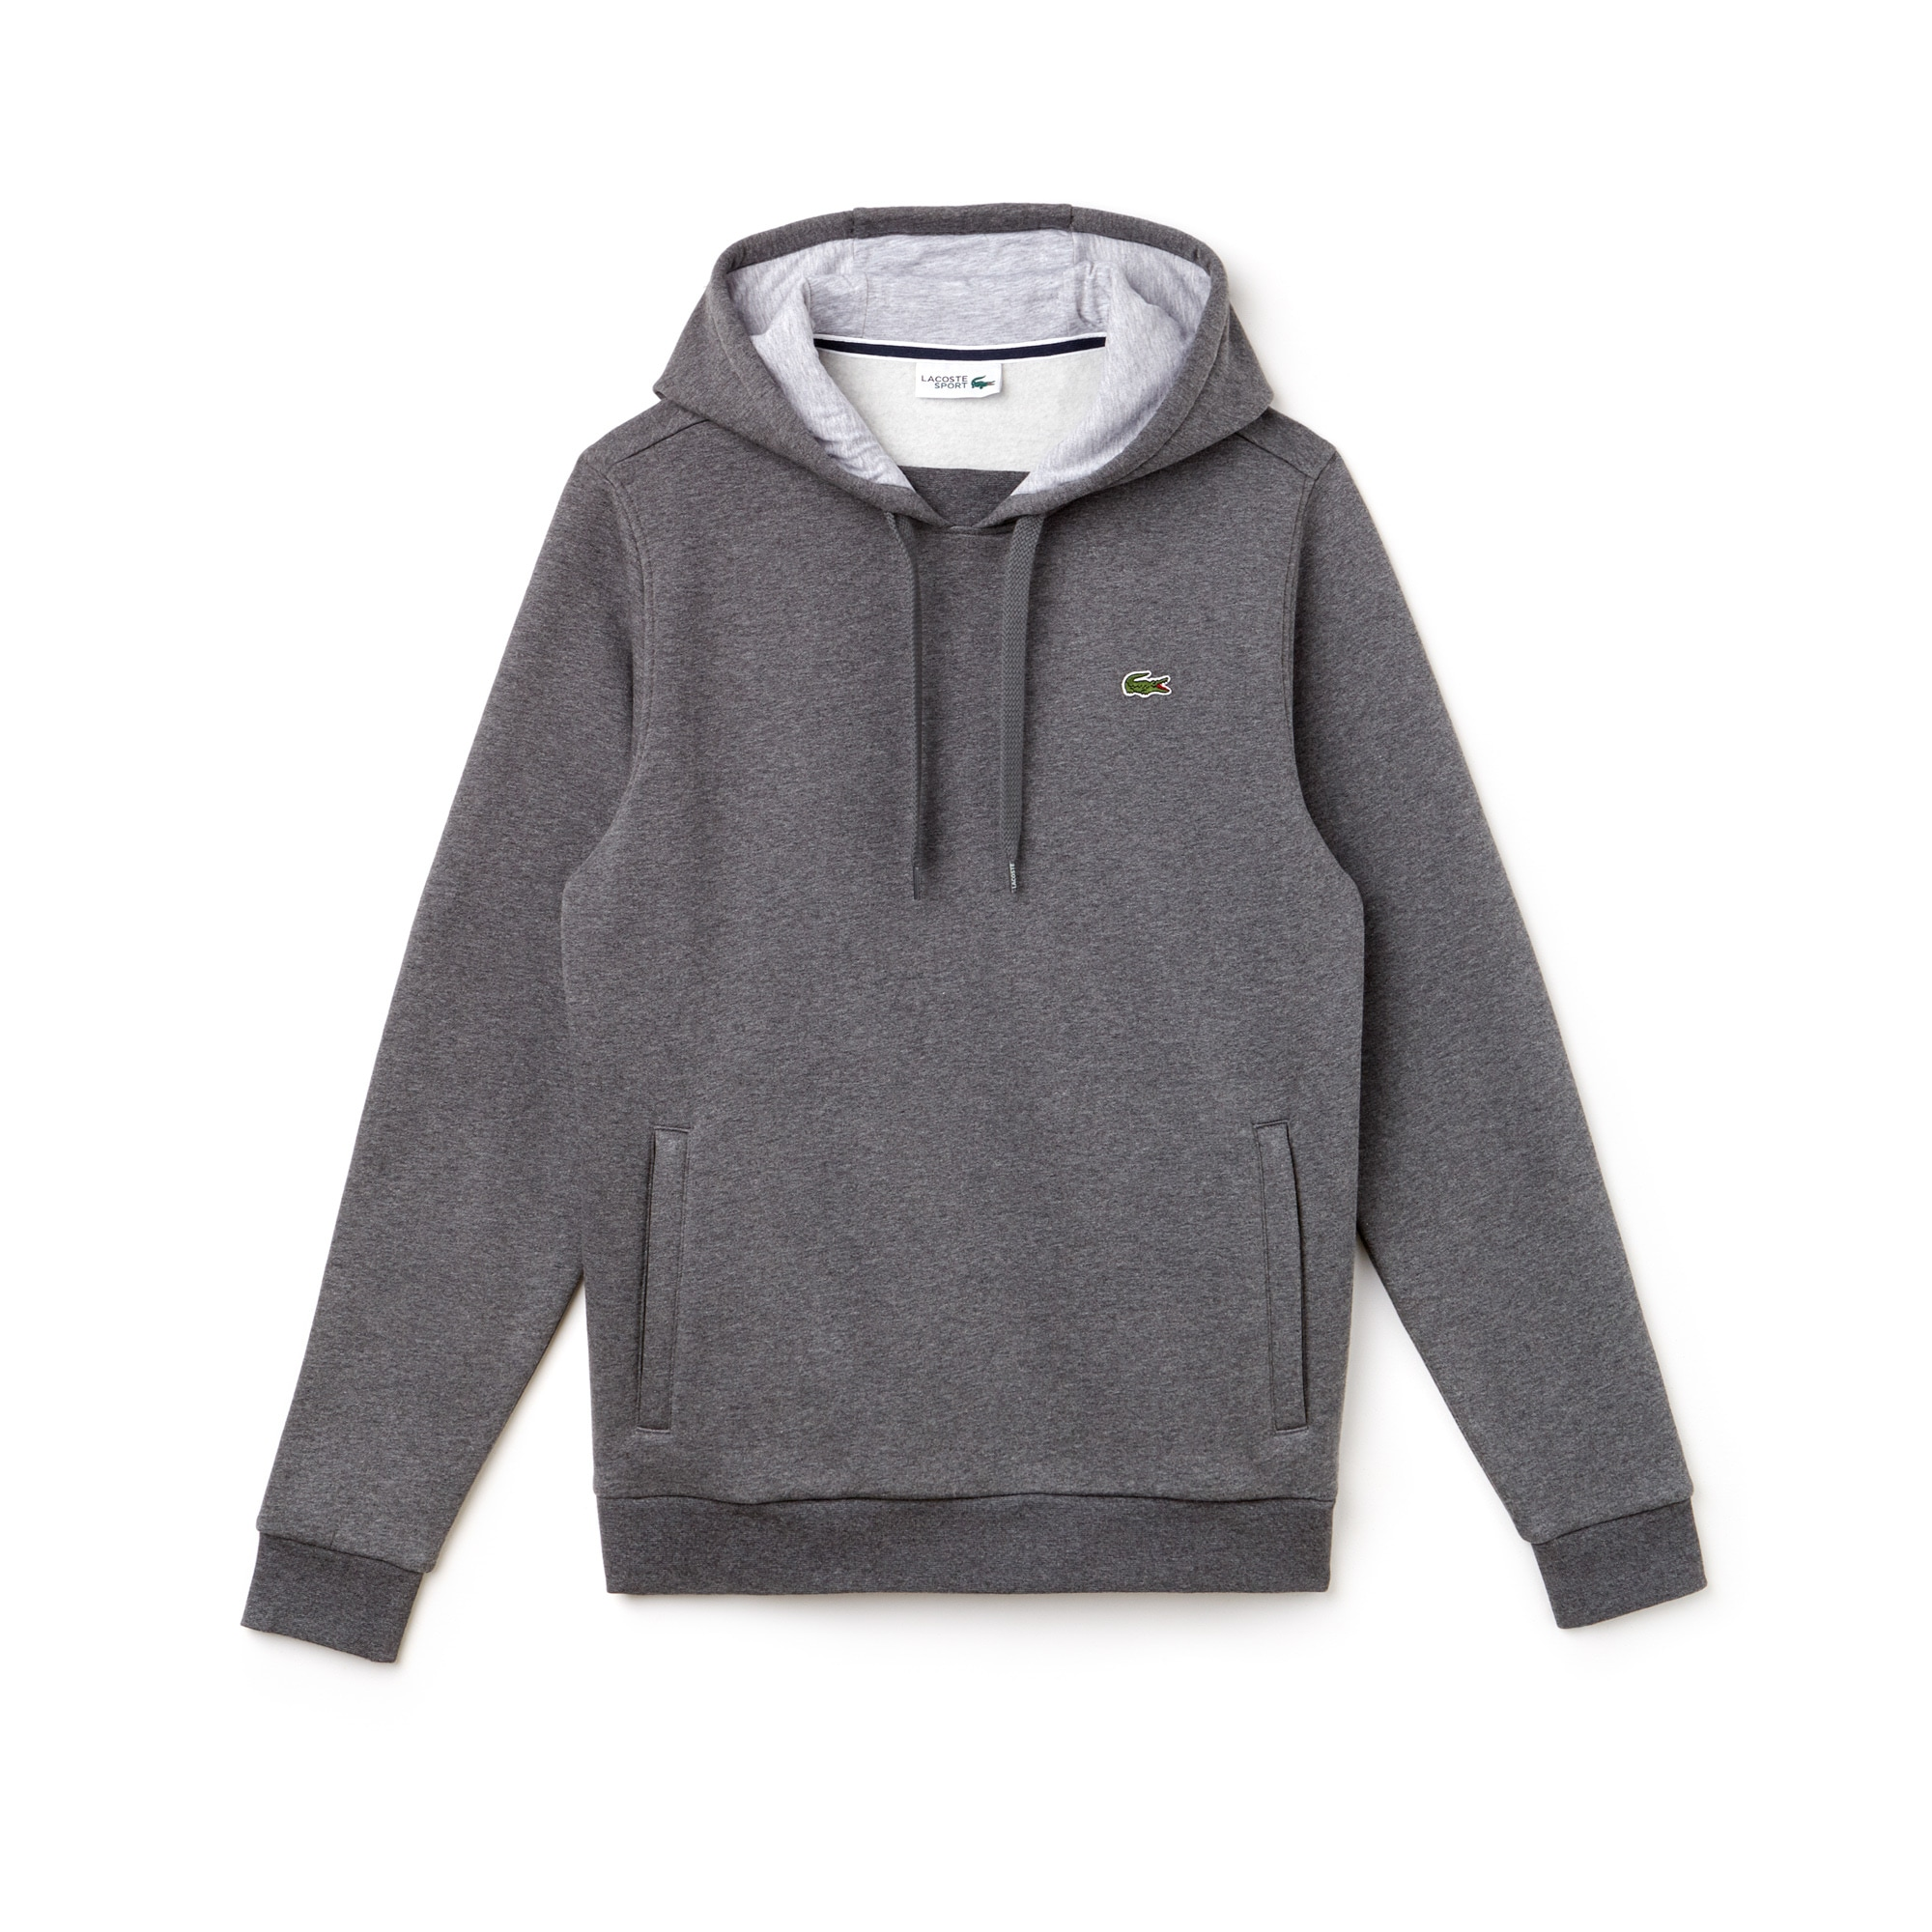 Men's Sport Hooded Fleece Tennis Sweatshirt